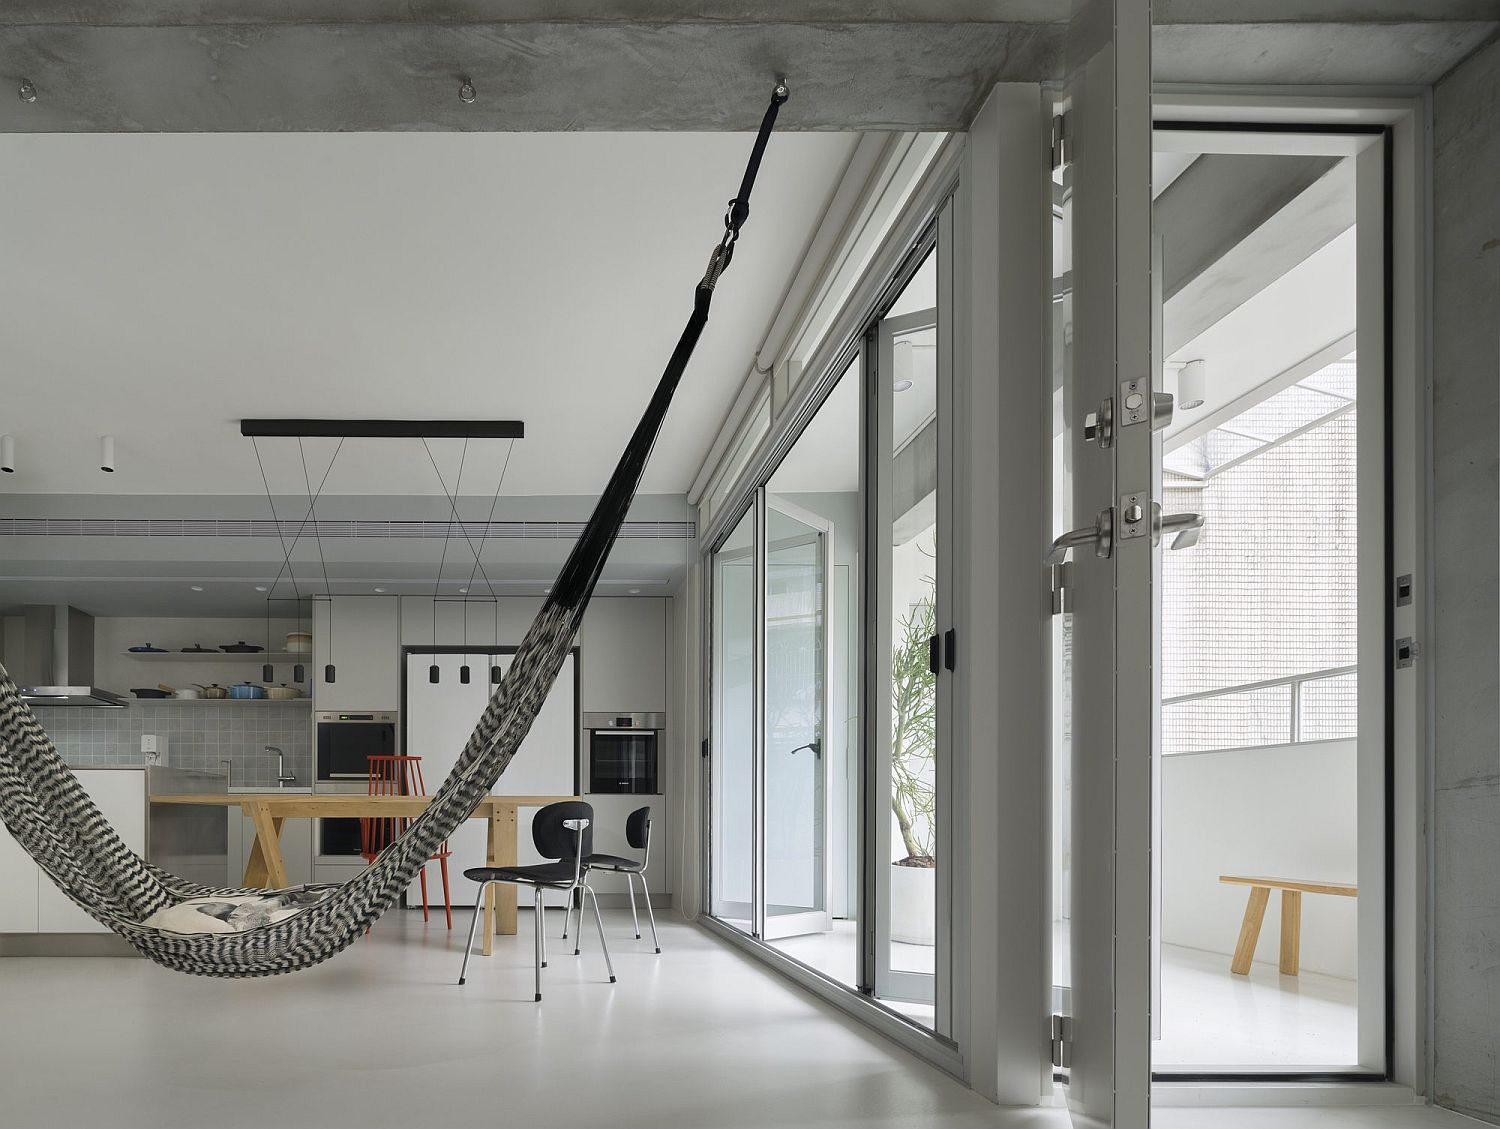 Series of folding glass doors connect the interior with the small balcony